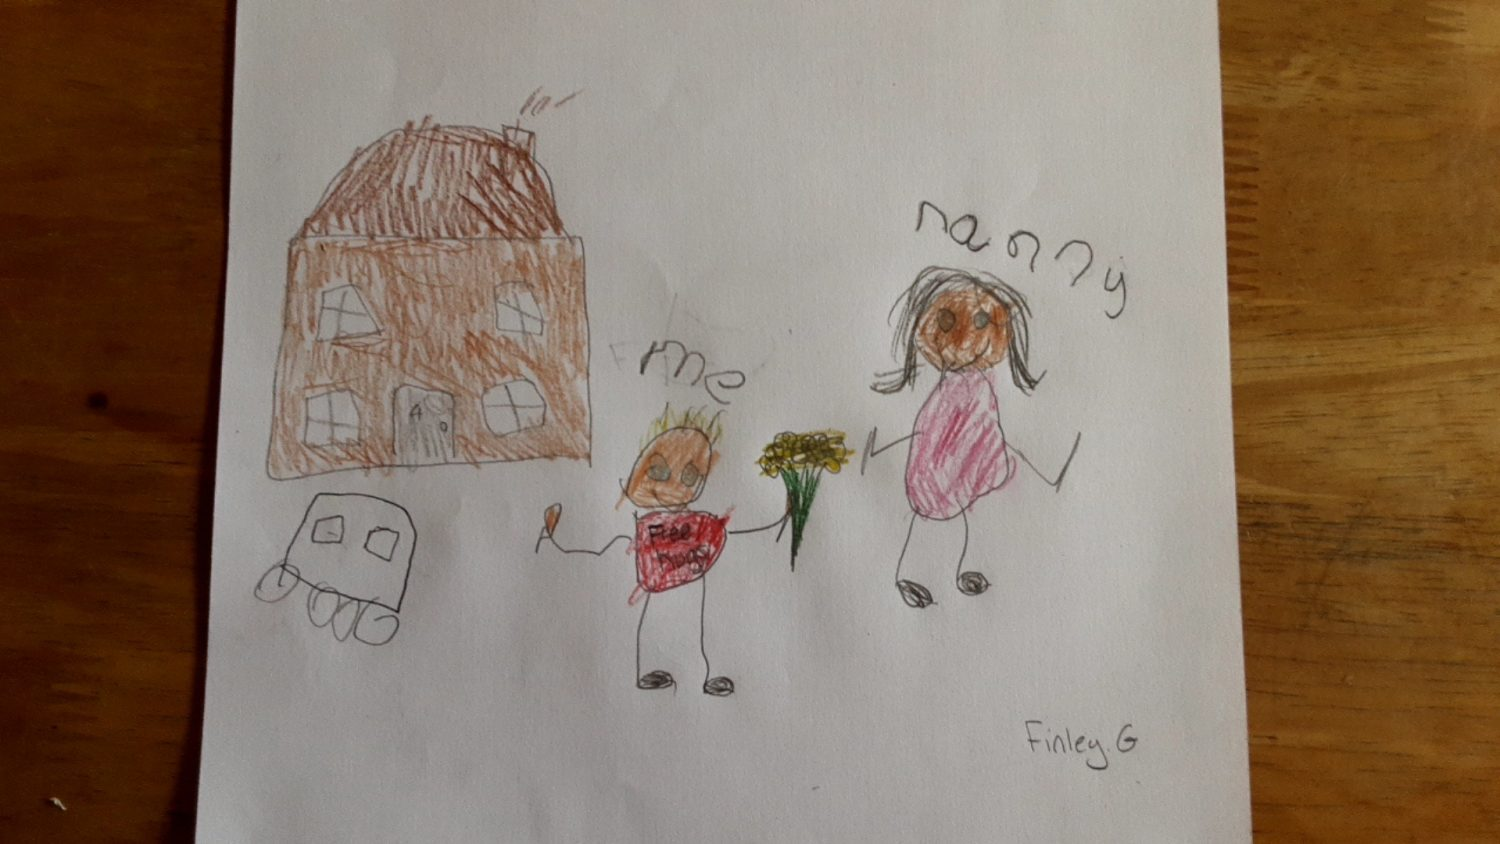 childrens drawing of a child giving their nanny a bunvh of flowers outside a house